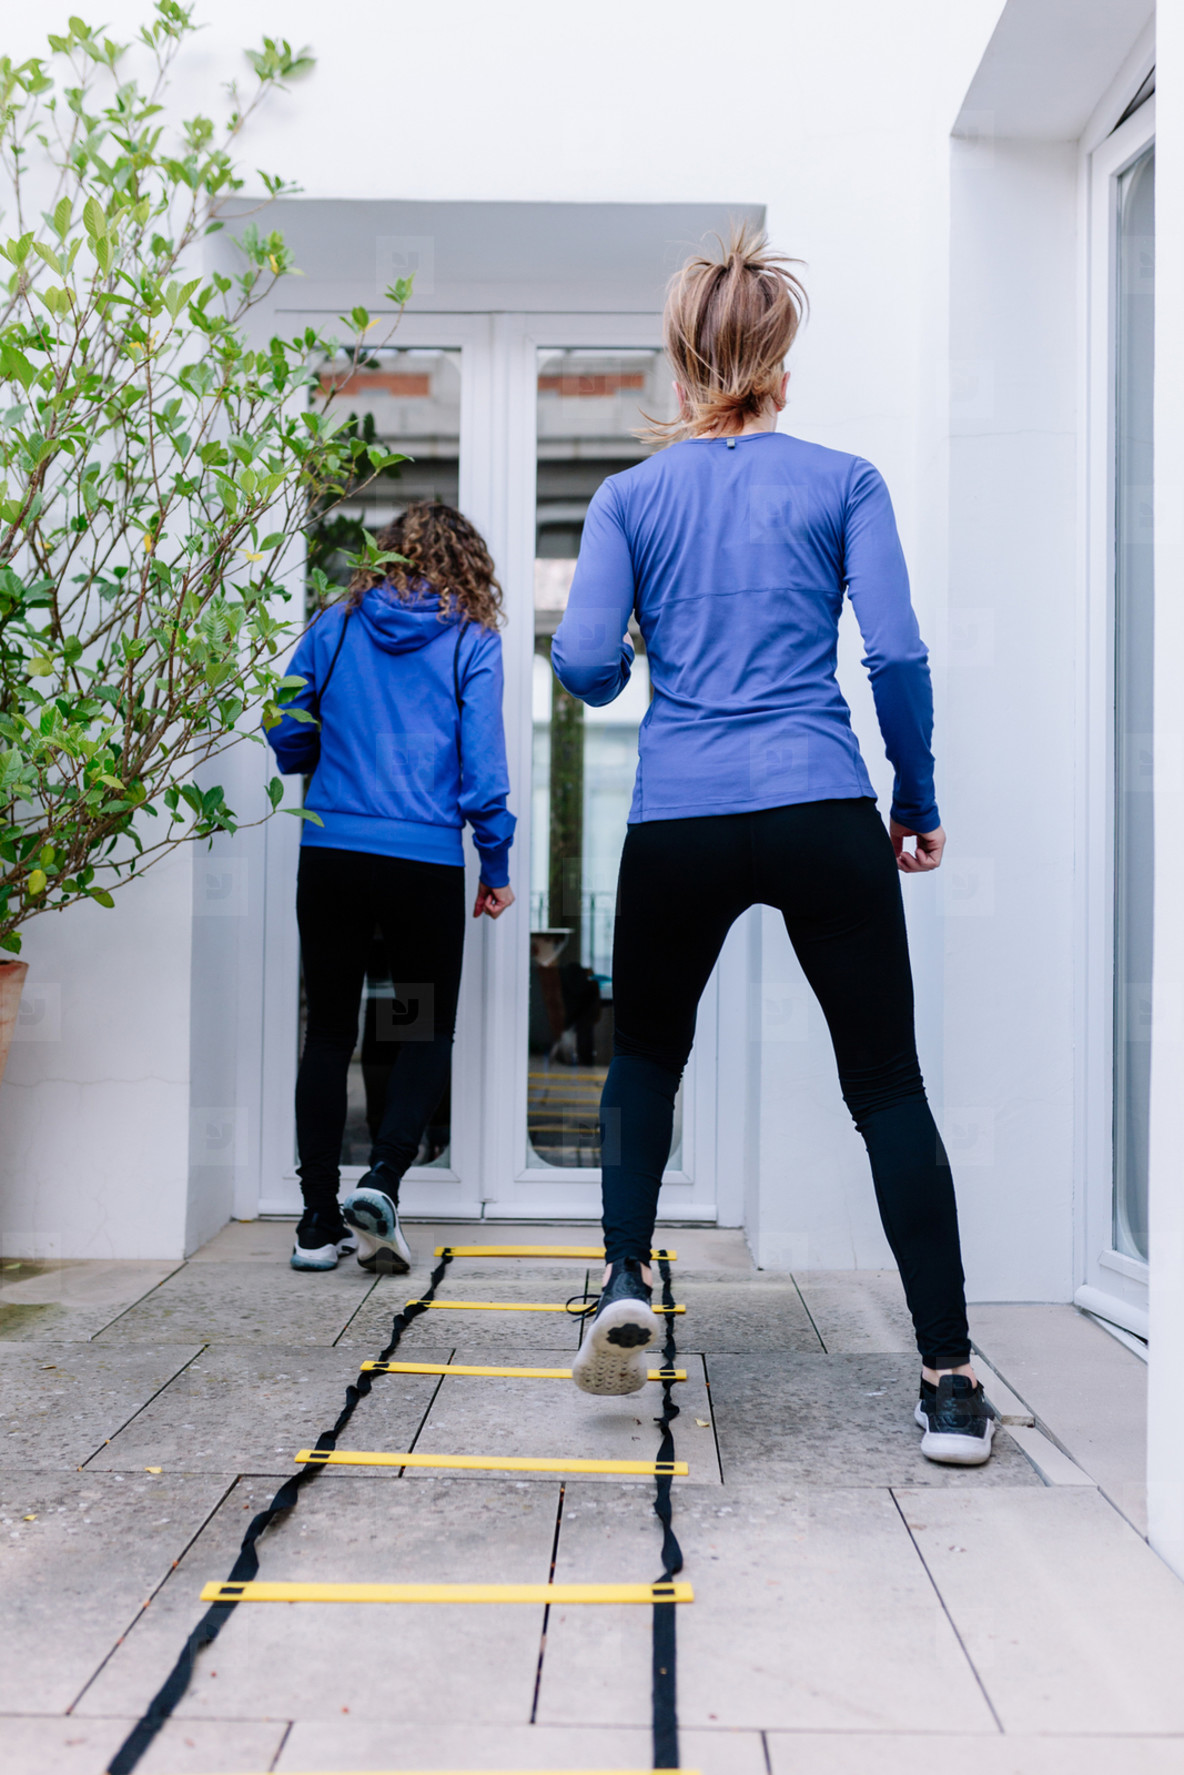 Two young women doing agility ladder exercise on a terrace